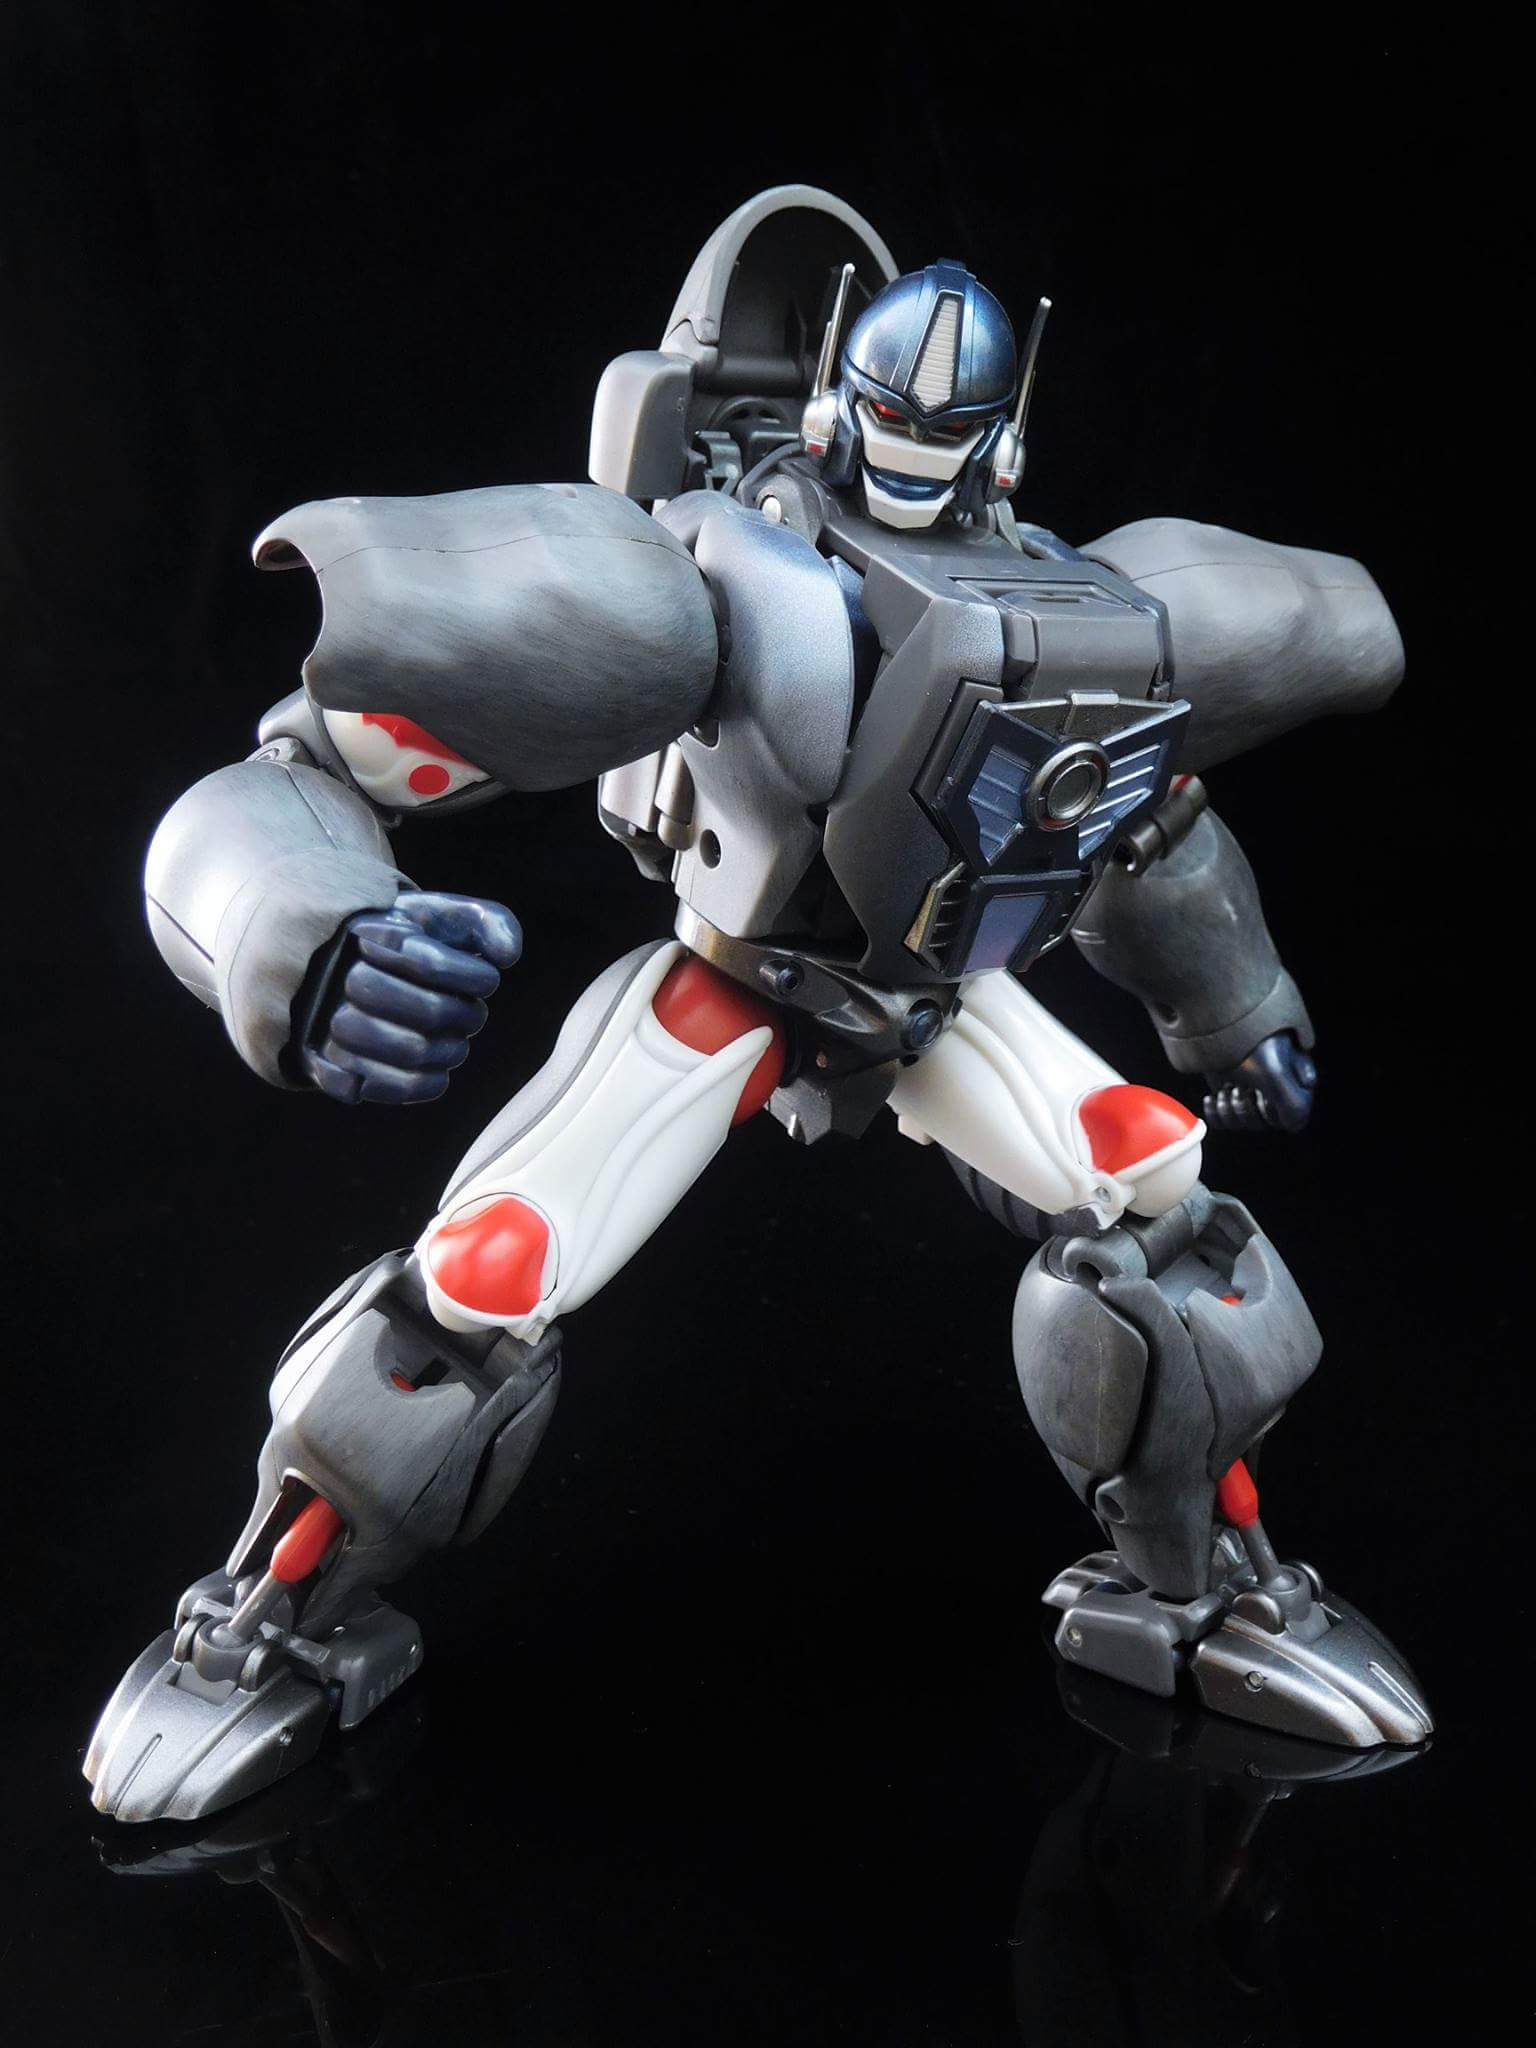 [Masterpiece] MP-32, MP-38 Optimus Primal et MP-38+ Burning Convoy (Beast Wars) - Page 3 JVwwfF3k